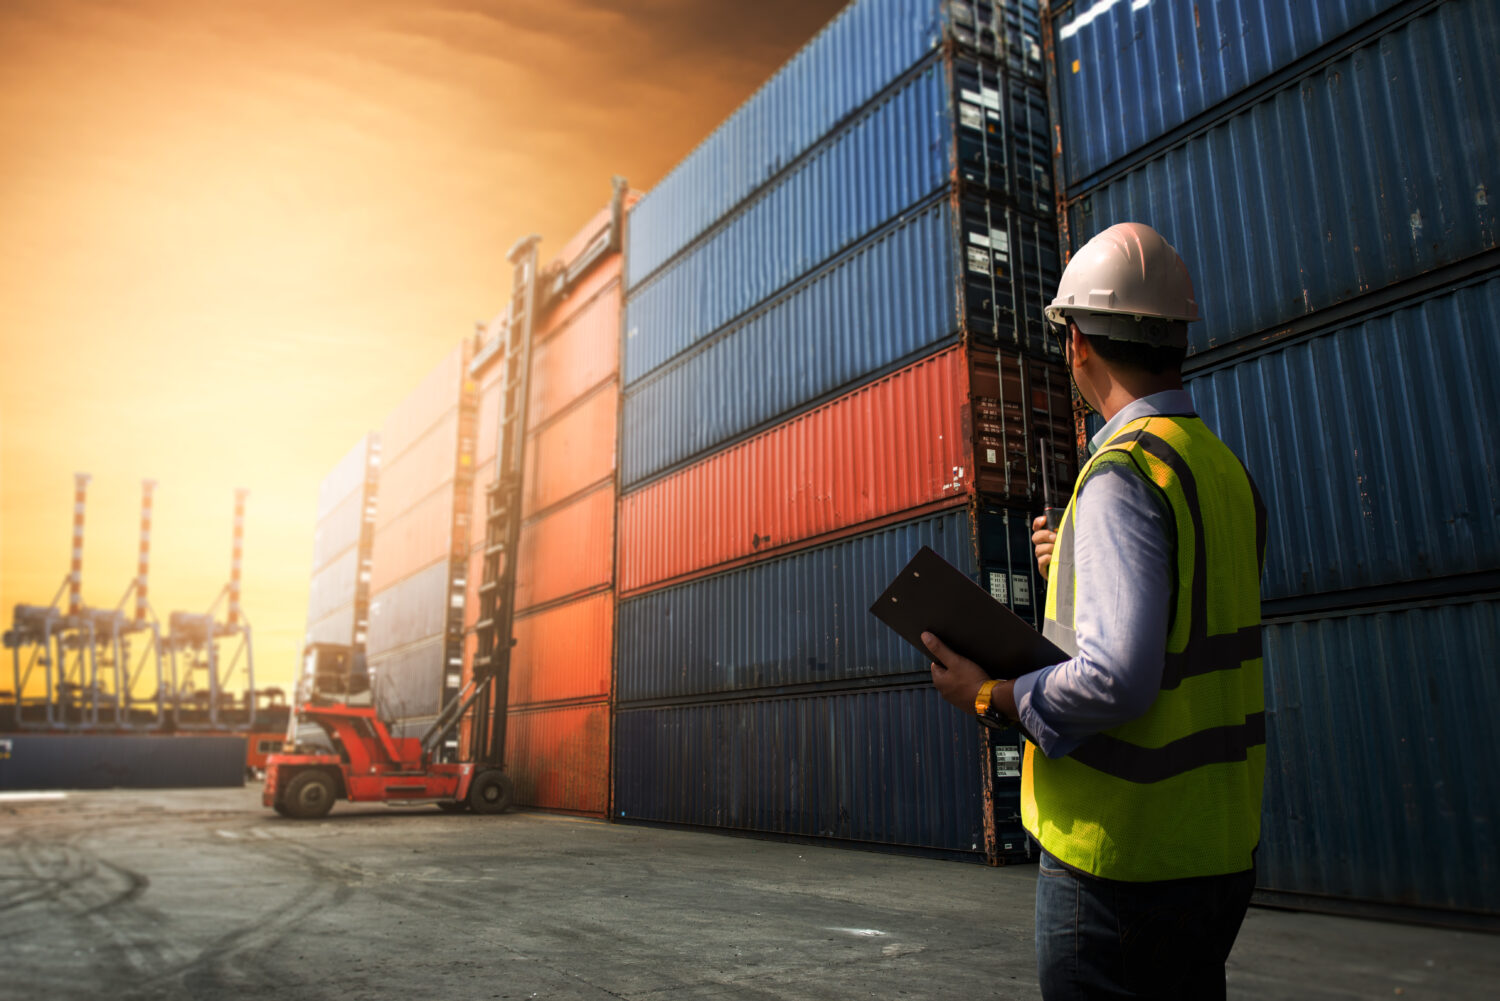 Logistics management software – the key in solving supply chain issues